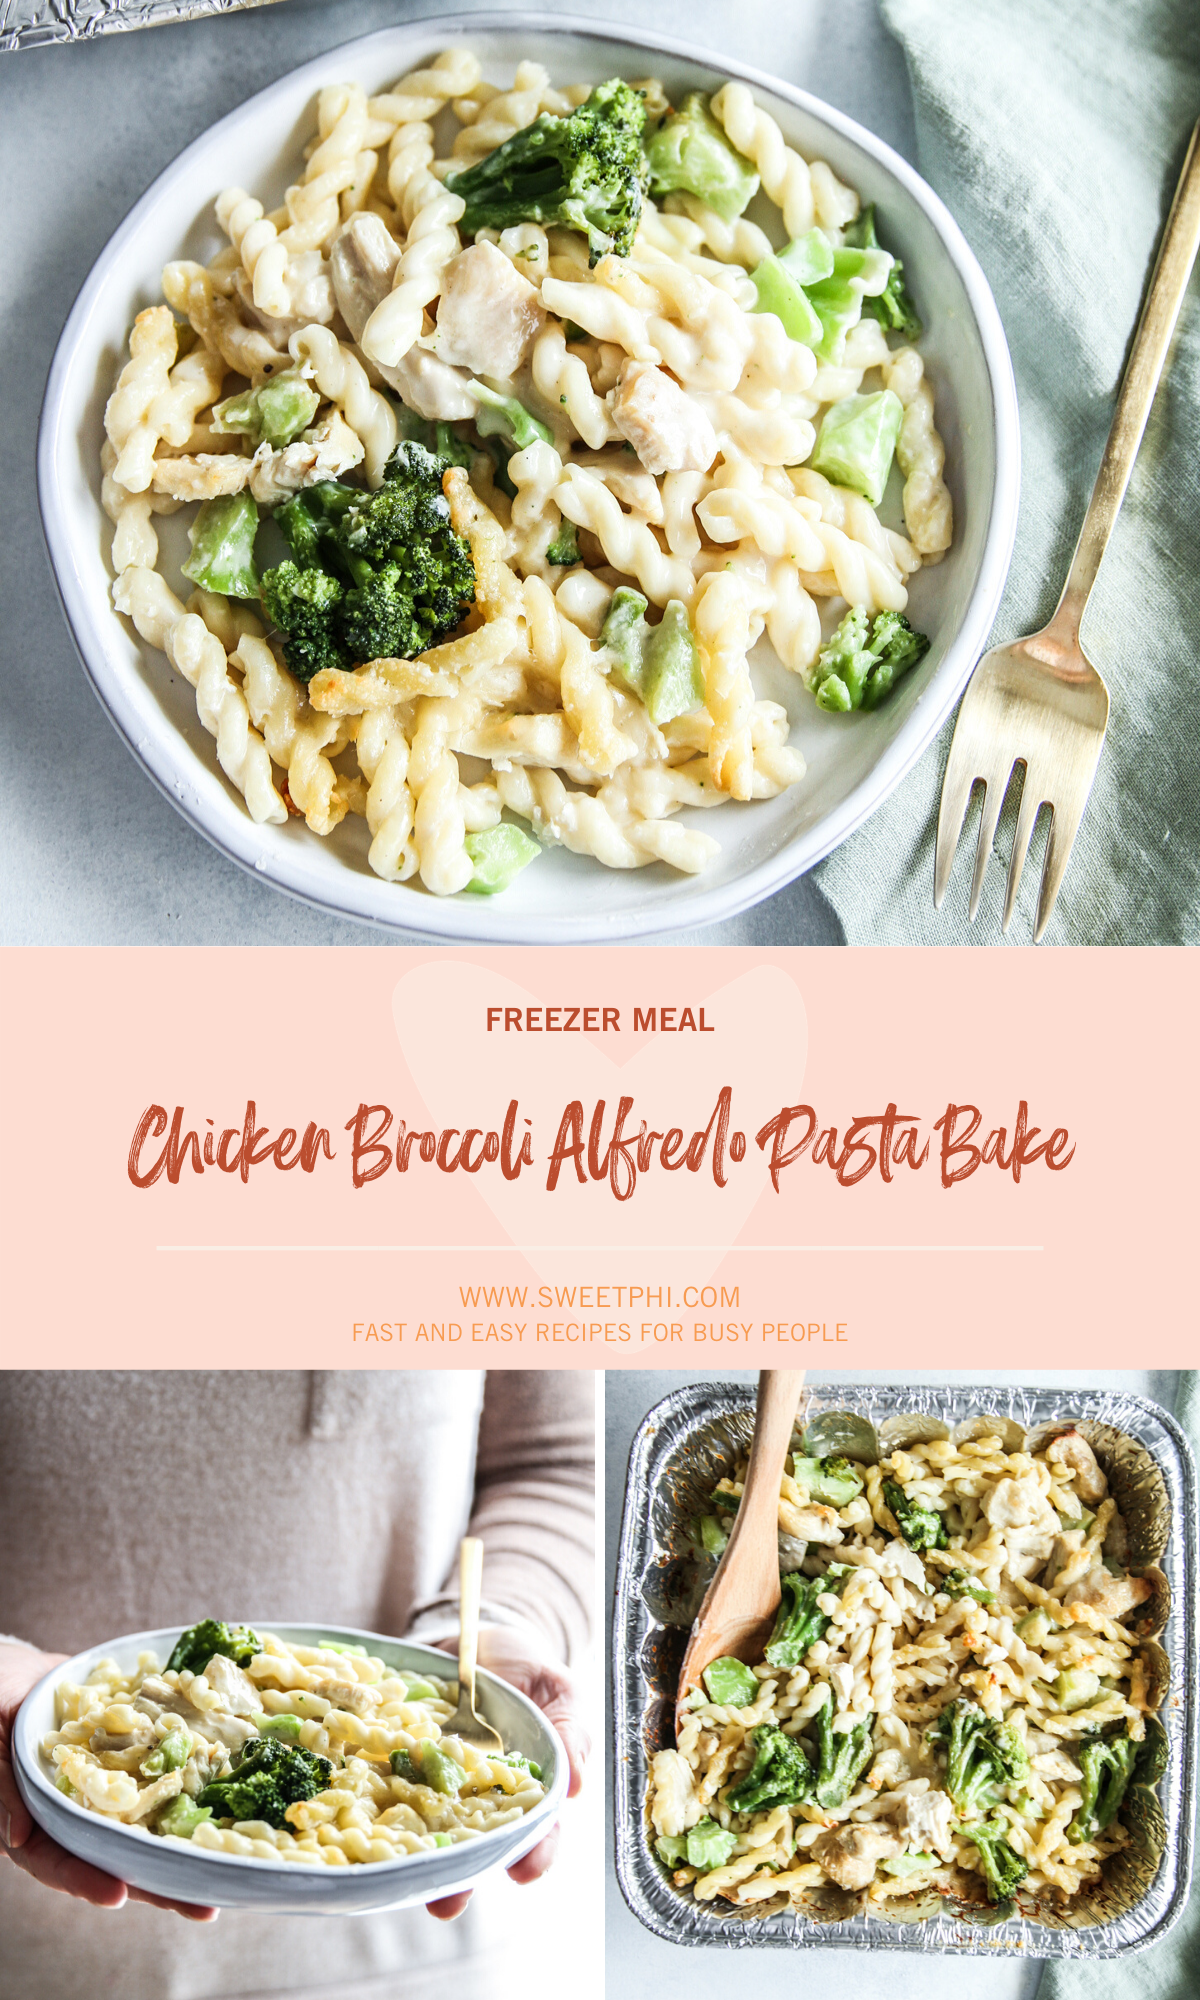 The best tasting chicken Broccoli Alfredo Freezer Meal